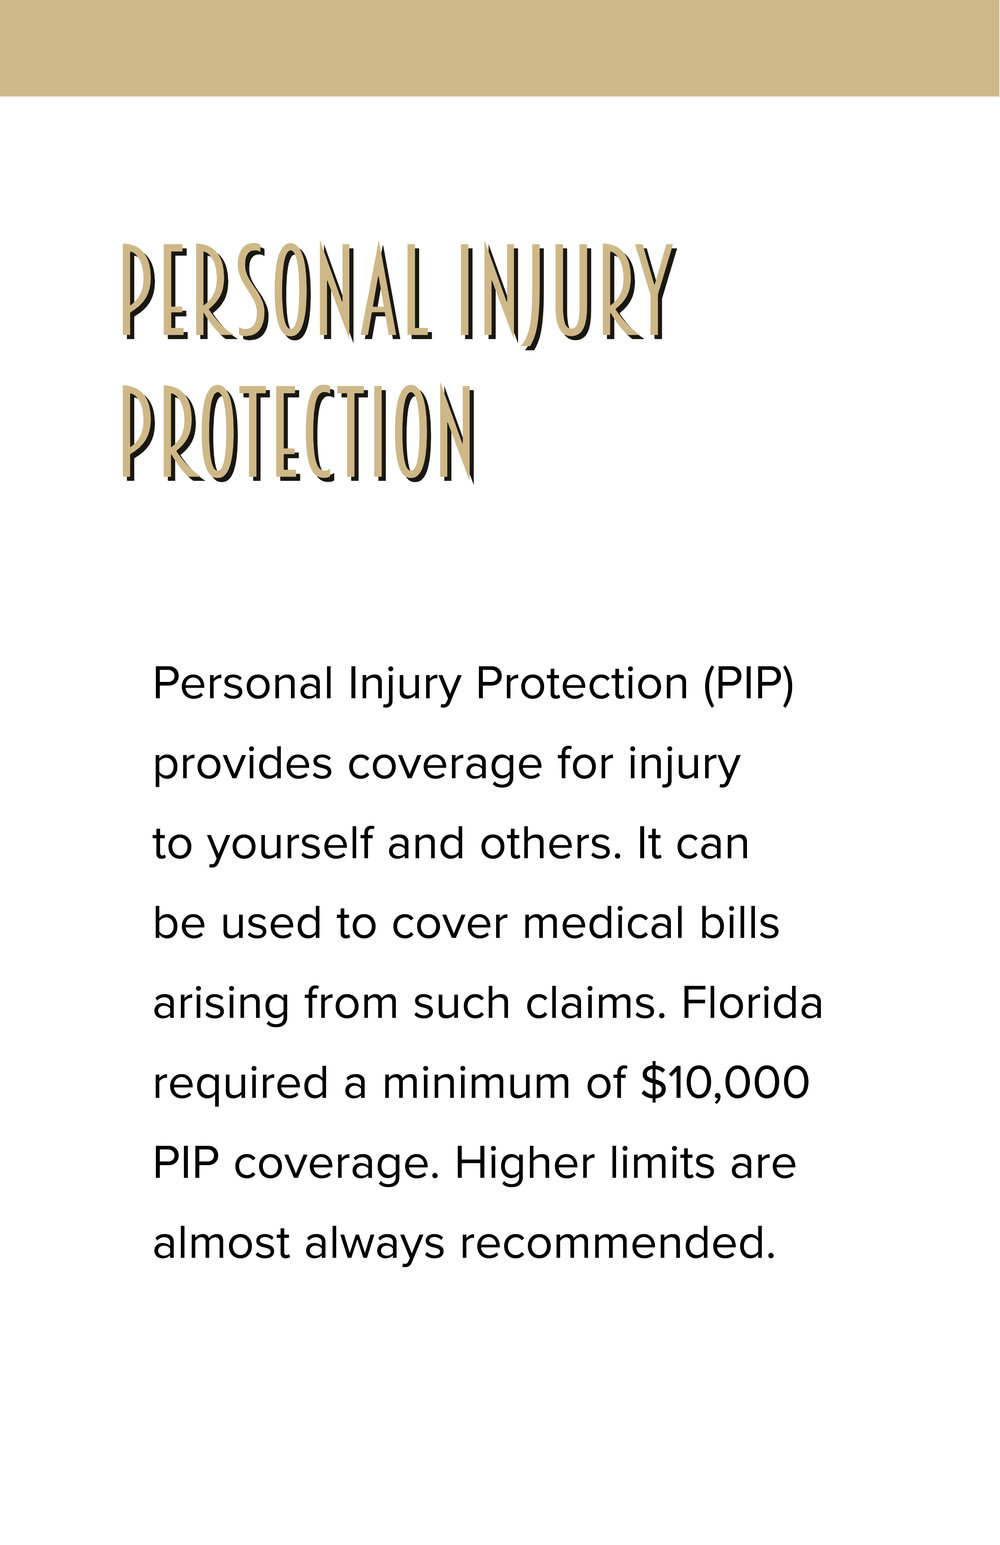 Personal Injury Protection.jpg